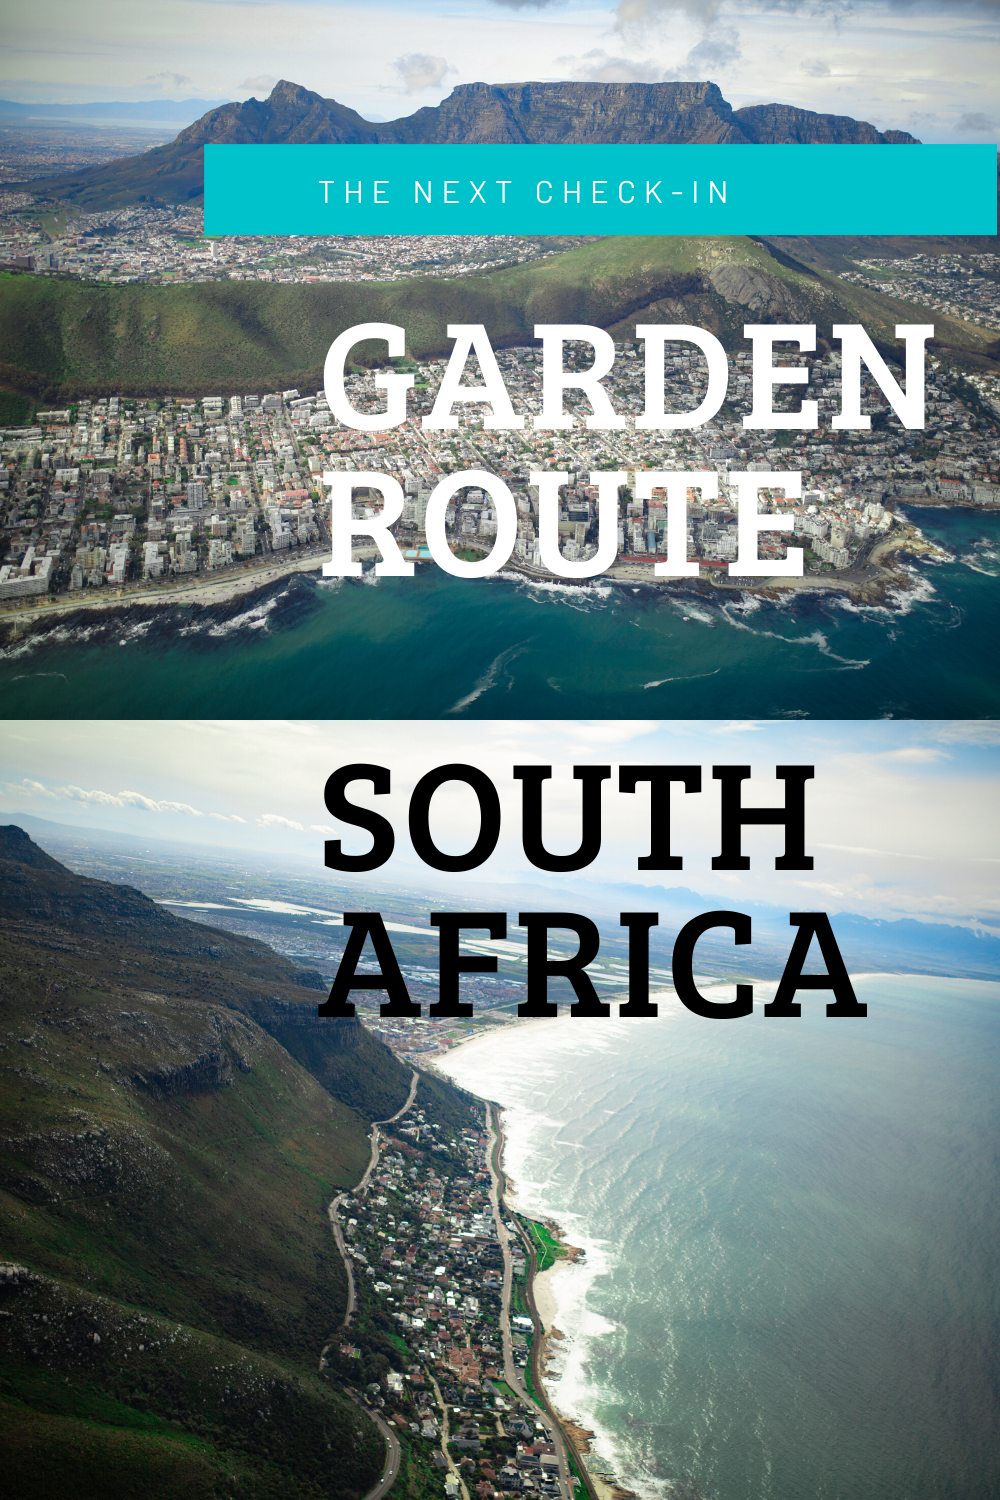 Garden Route South Africa In 2020 South Africa Travel South Africa Africa